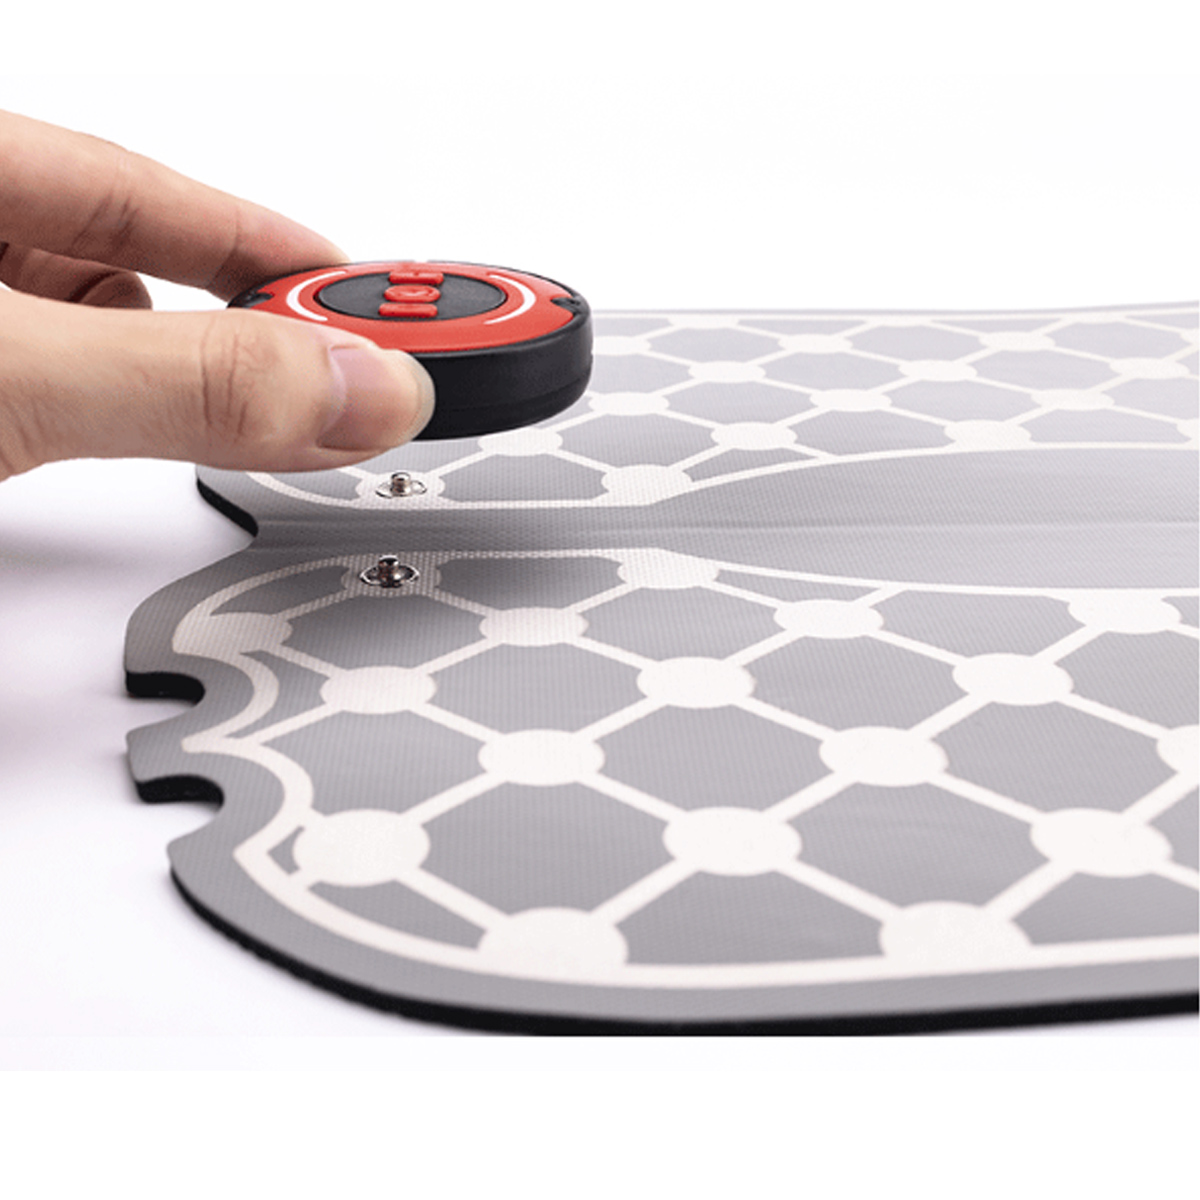 EMS Dual Foot Massager Mat 6 Modes 15 Levels Feet Relax Shiatsu Deep Kneading Therapy Massage Blood Circulation Device